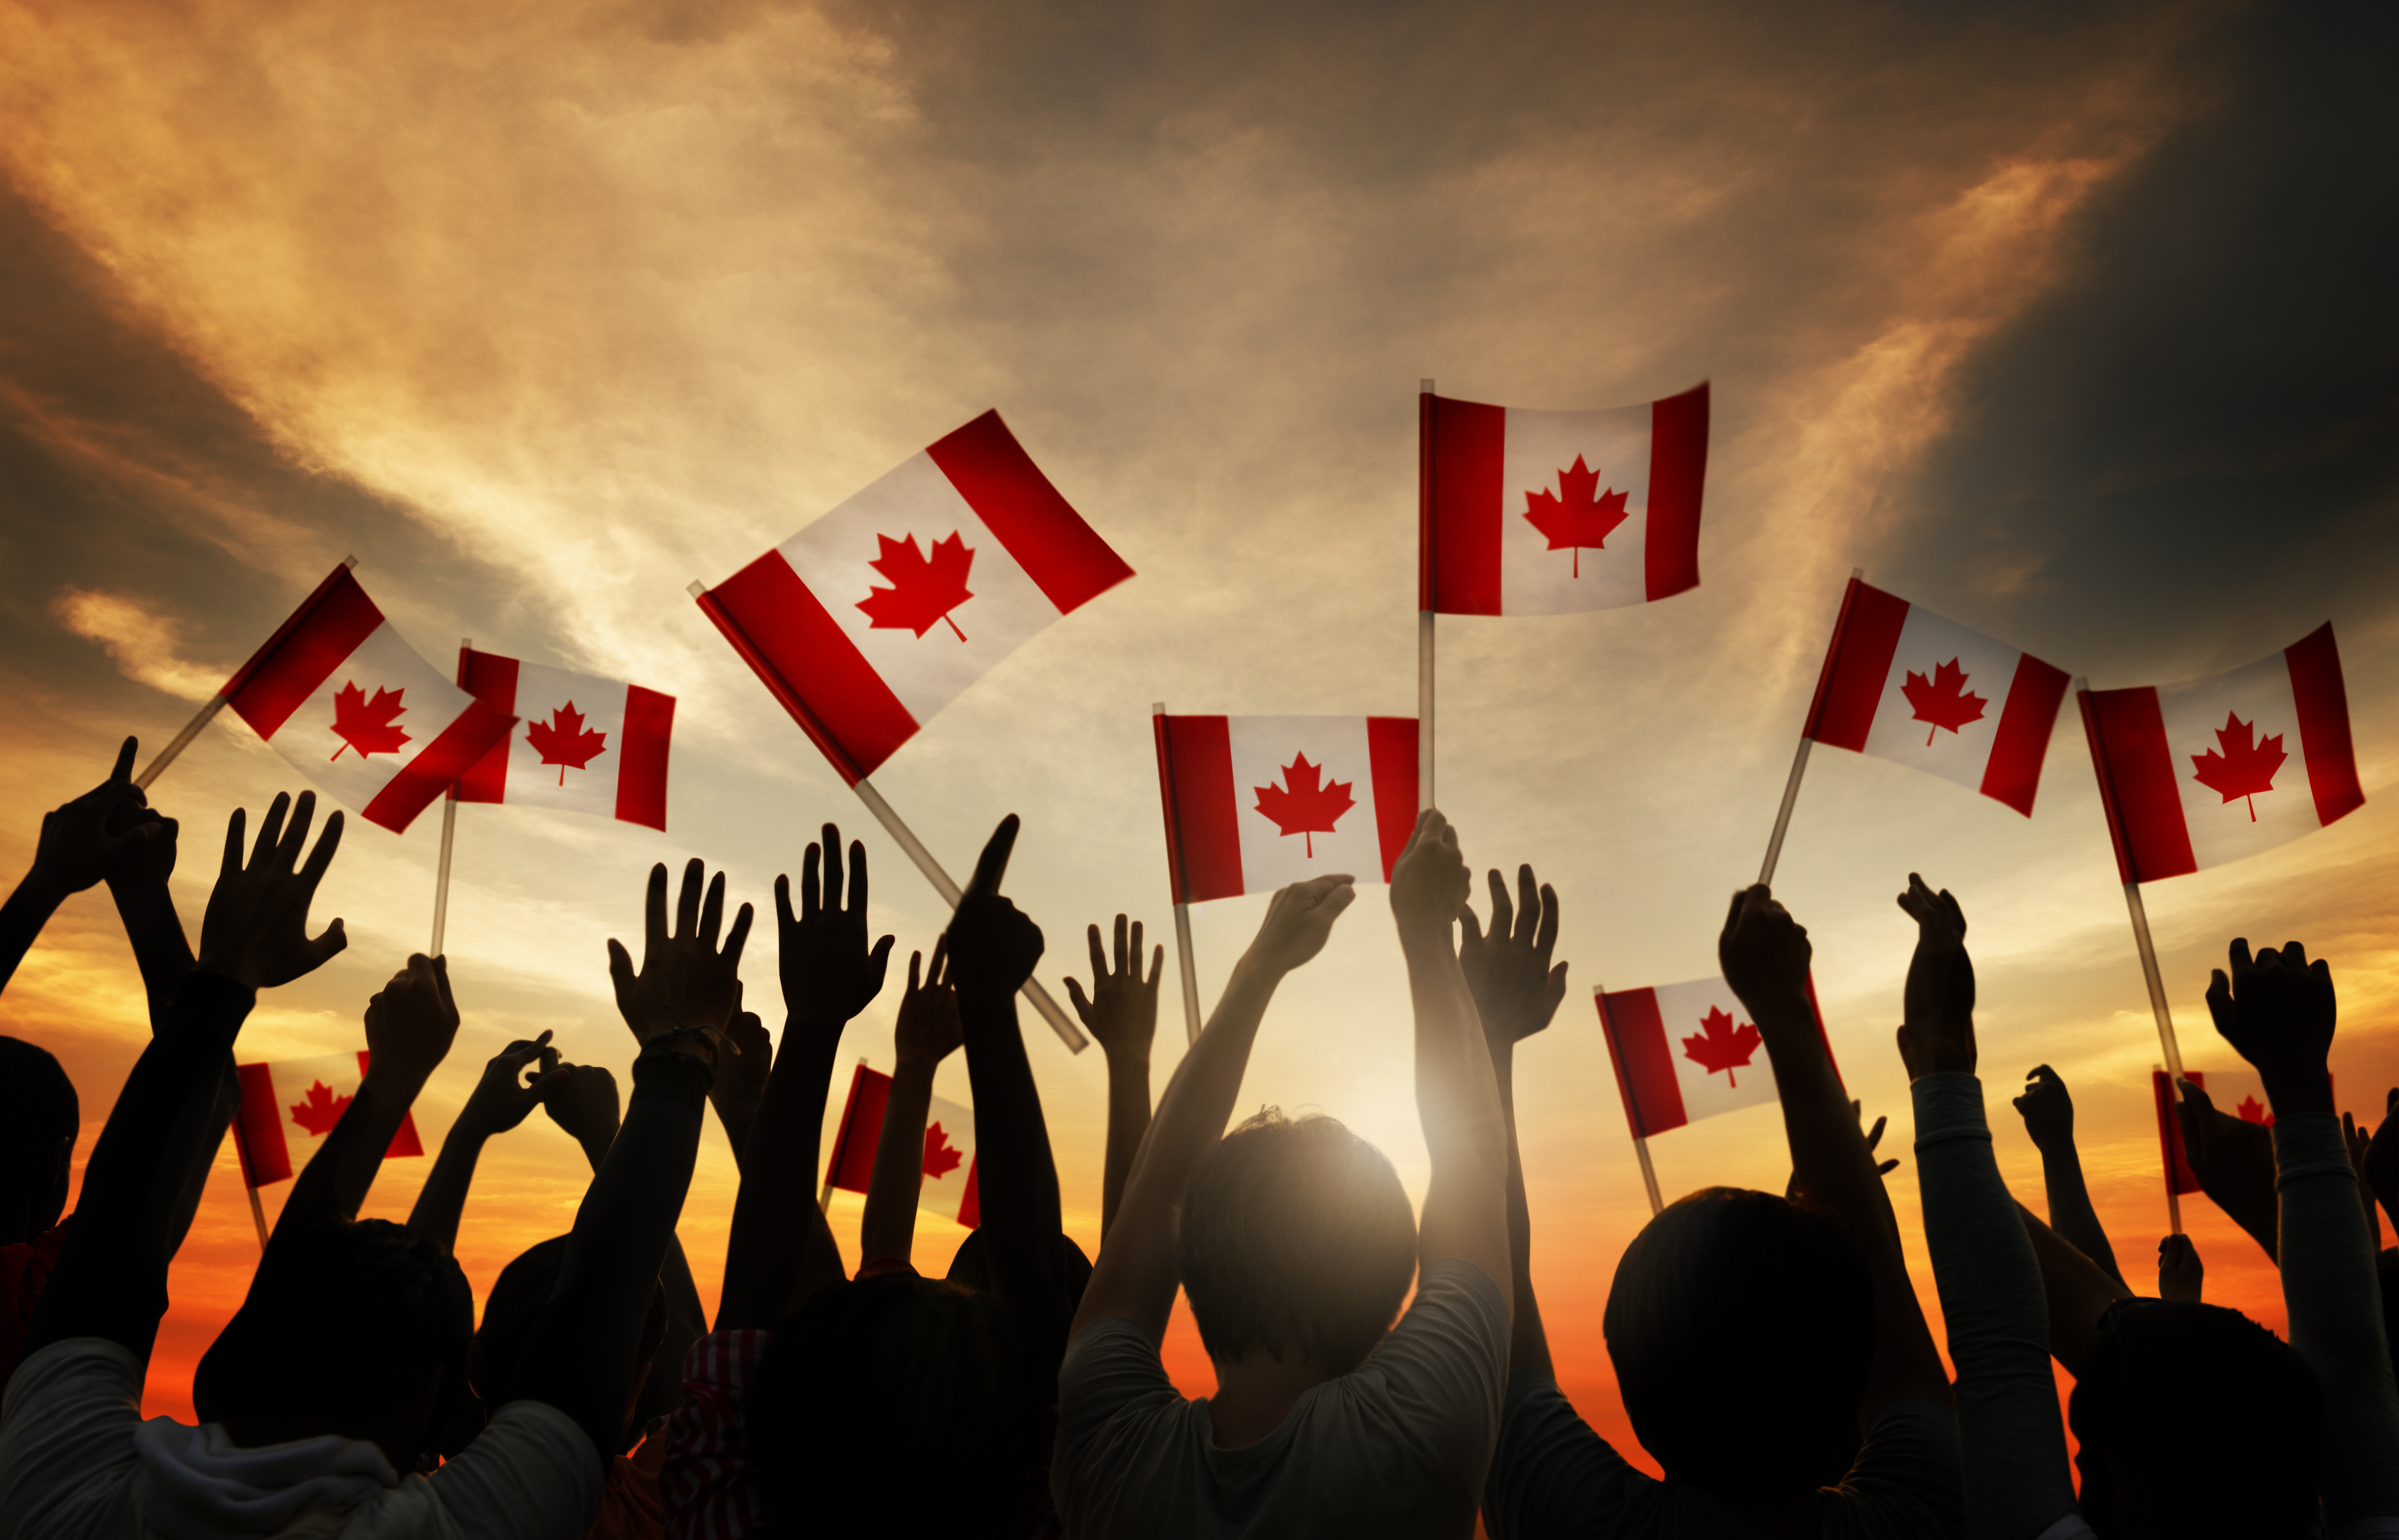 Group of People Waving Canada Flags